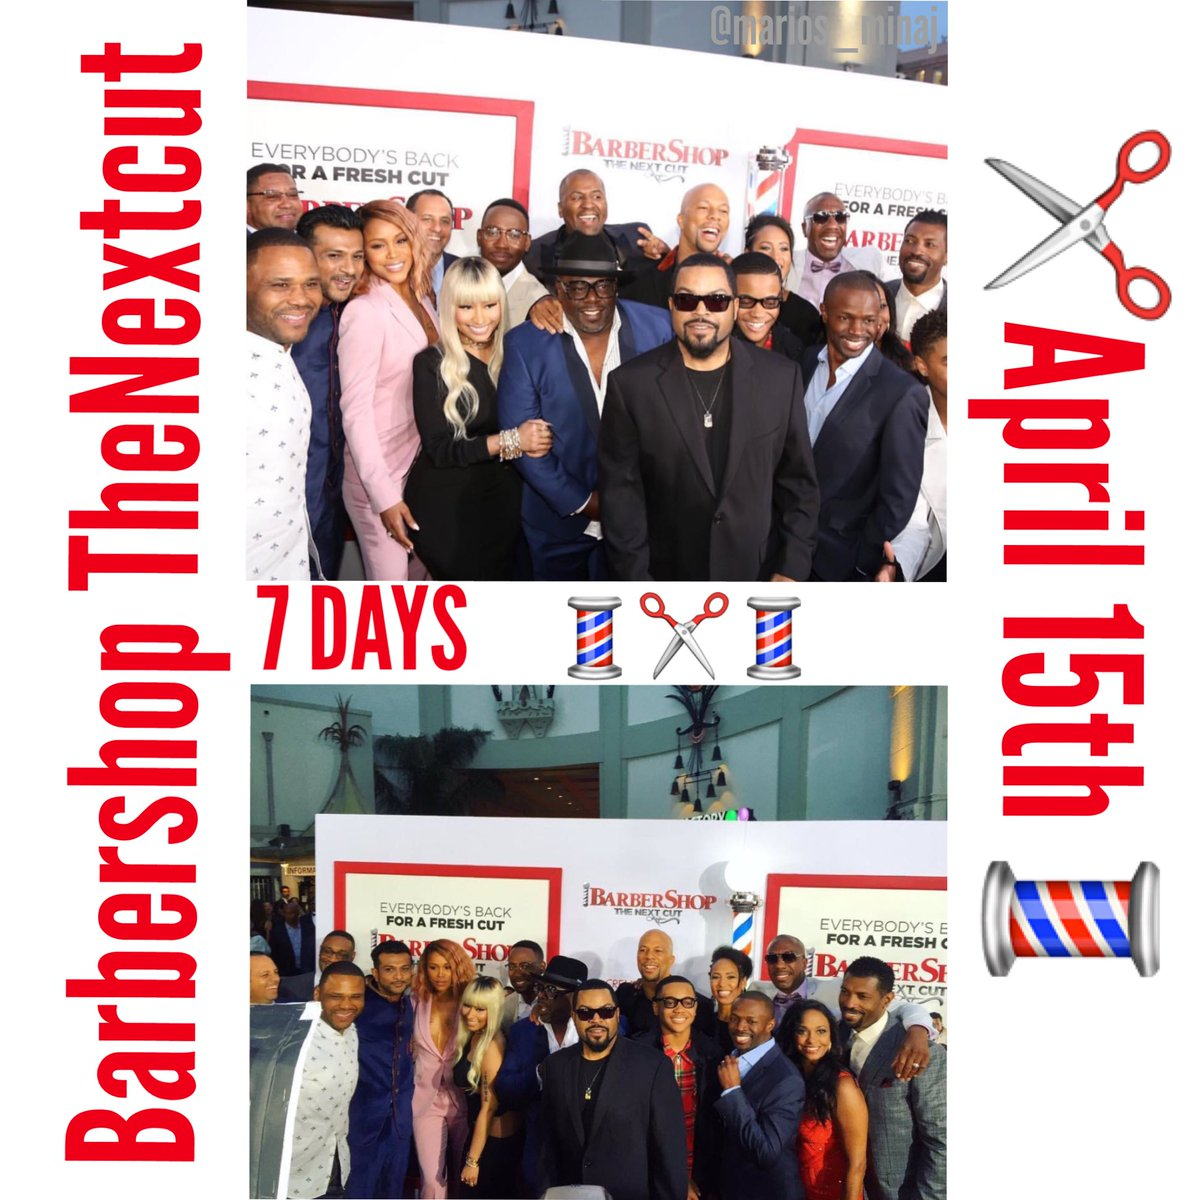 RT @marios_minaj: 7 more days for #BarberShopTheNextCut in Theaters ????✂️????✂️???? i can't wait fir this movie ???????????????? https://t.co/dX0B6qdARd